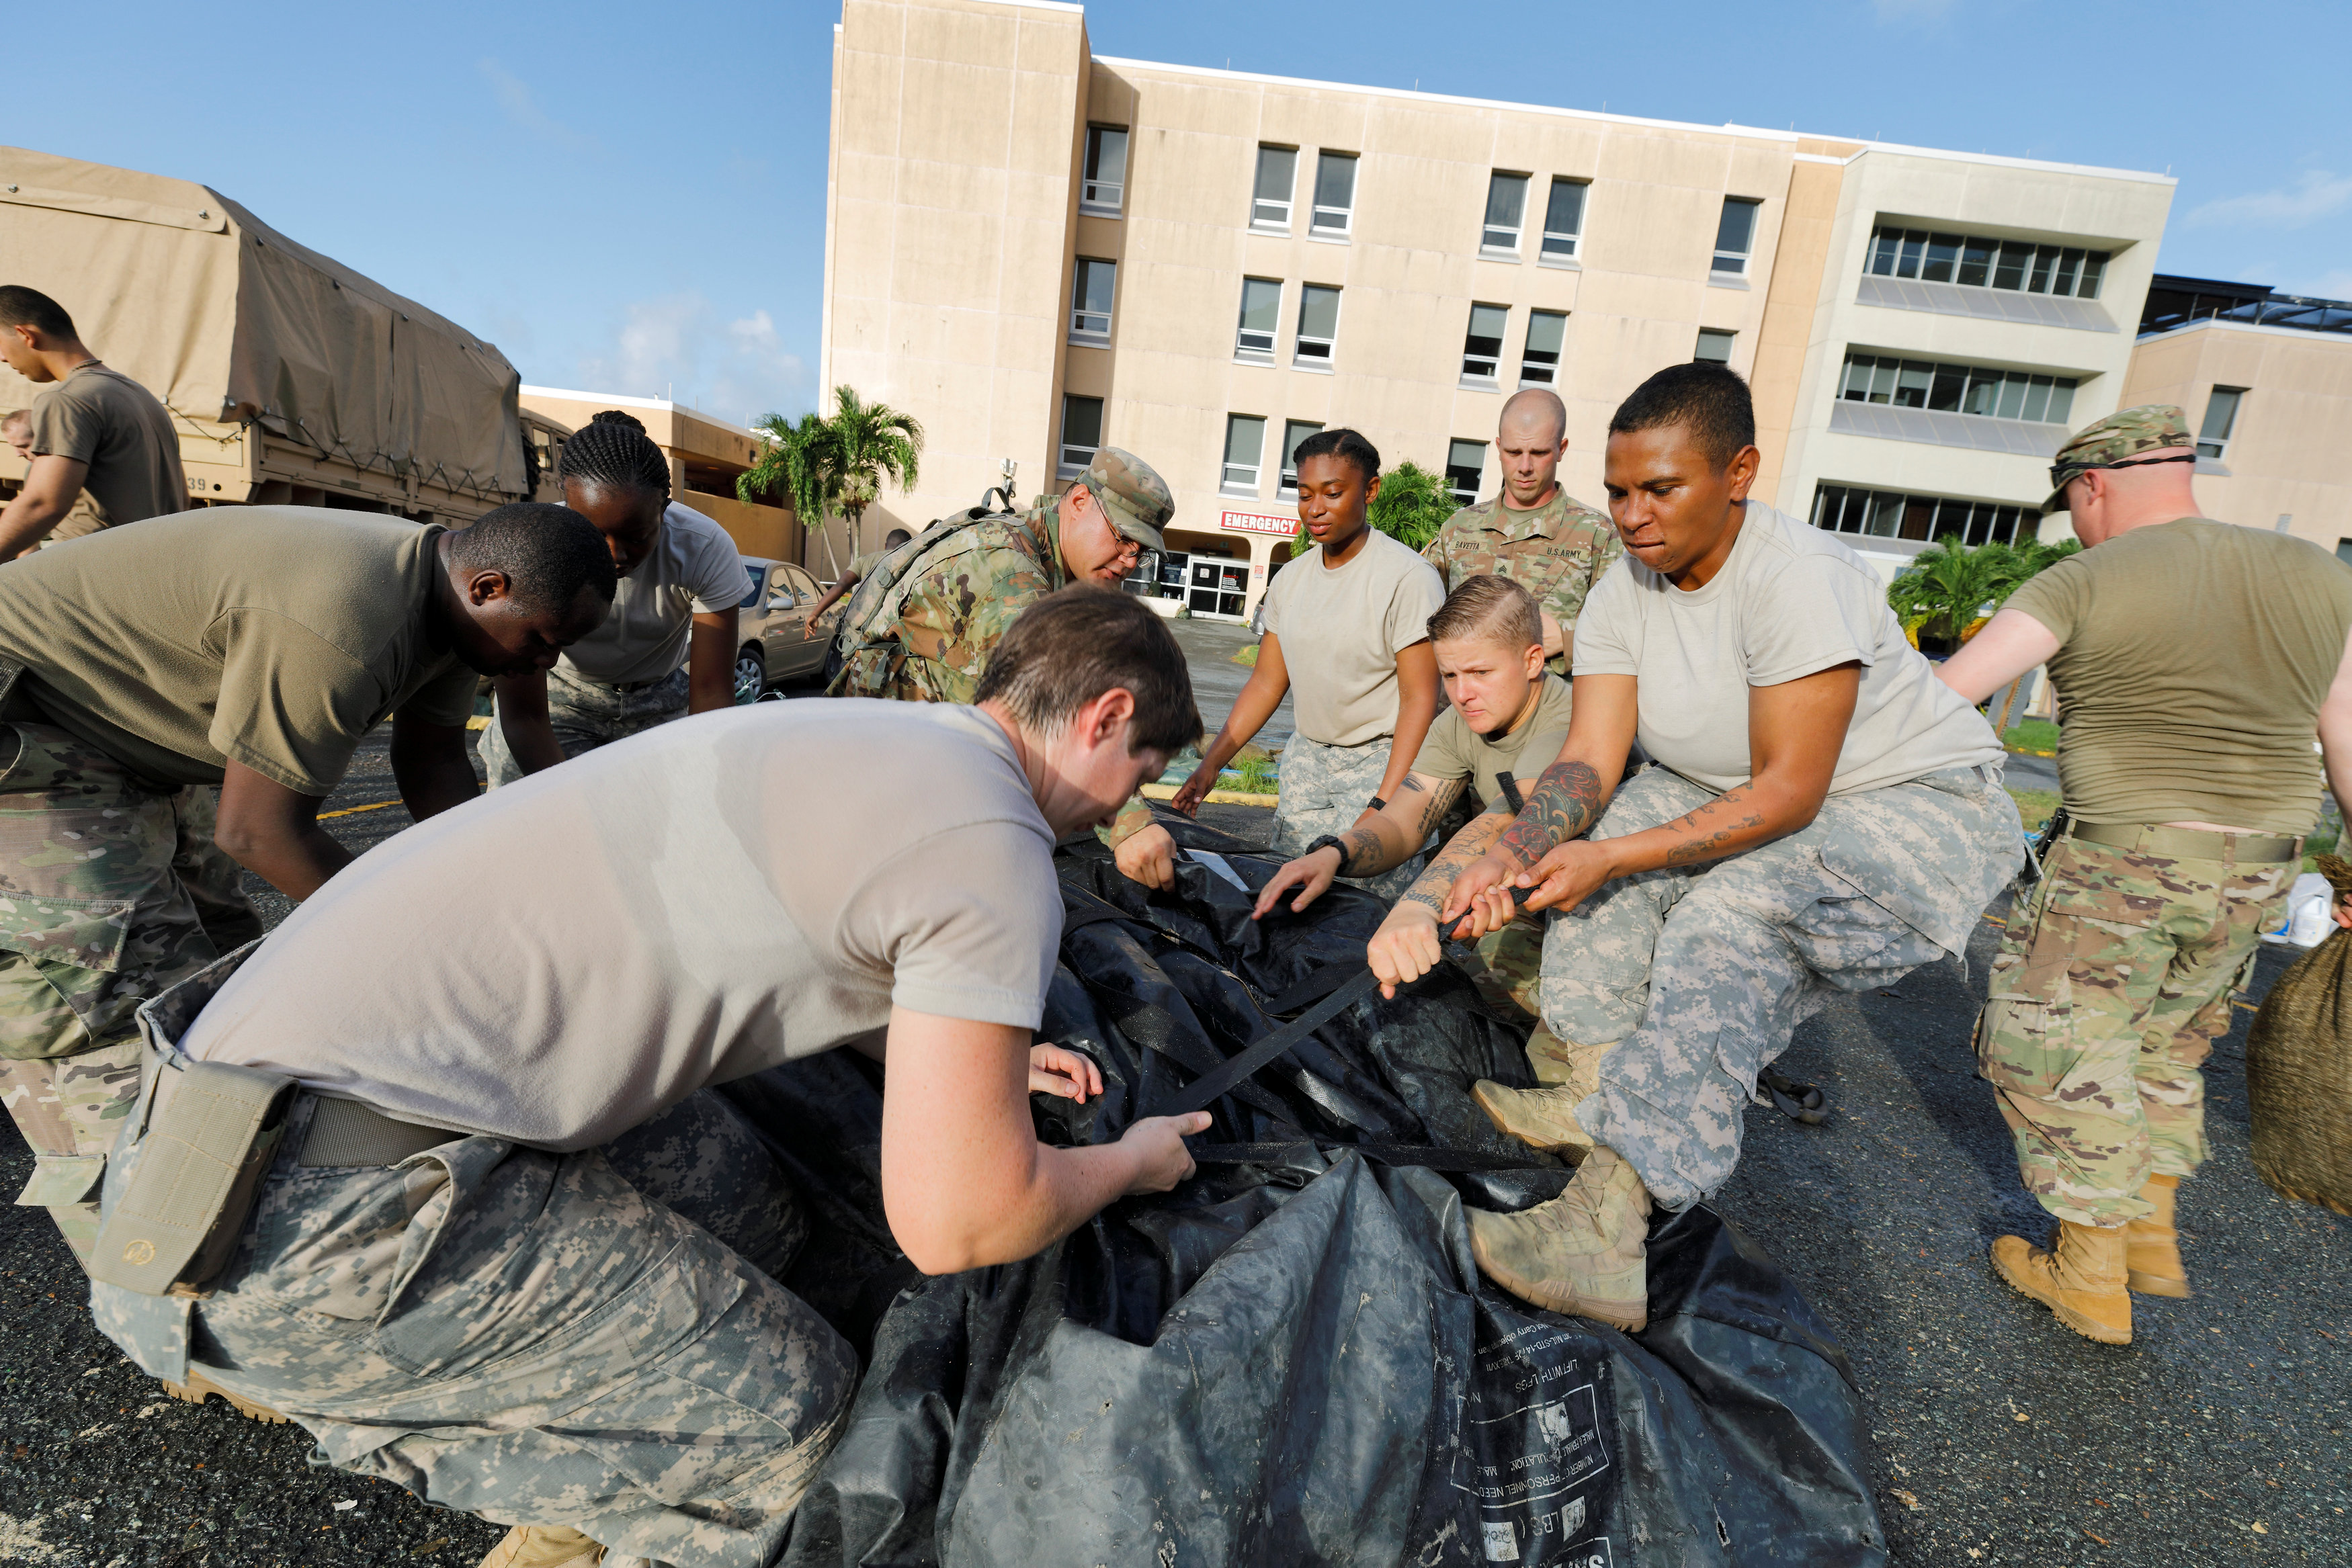 Soldiers from the 602nd Area Support Medical Company secure a portable tent as they break down a field hospital outside the Schneider Regional Medical Center while preparing to evacuate their unit in advance of Hurricane Maria, in Charlotte Amalie, St. Thomas, U.S. Virgin Islands on Sept. 17, 2017. (REUTERS/Jonathan Drake)